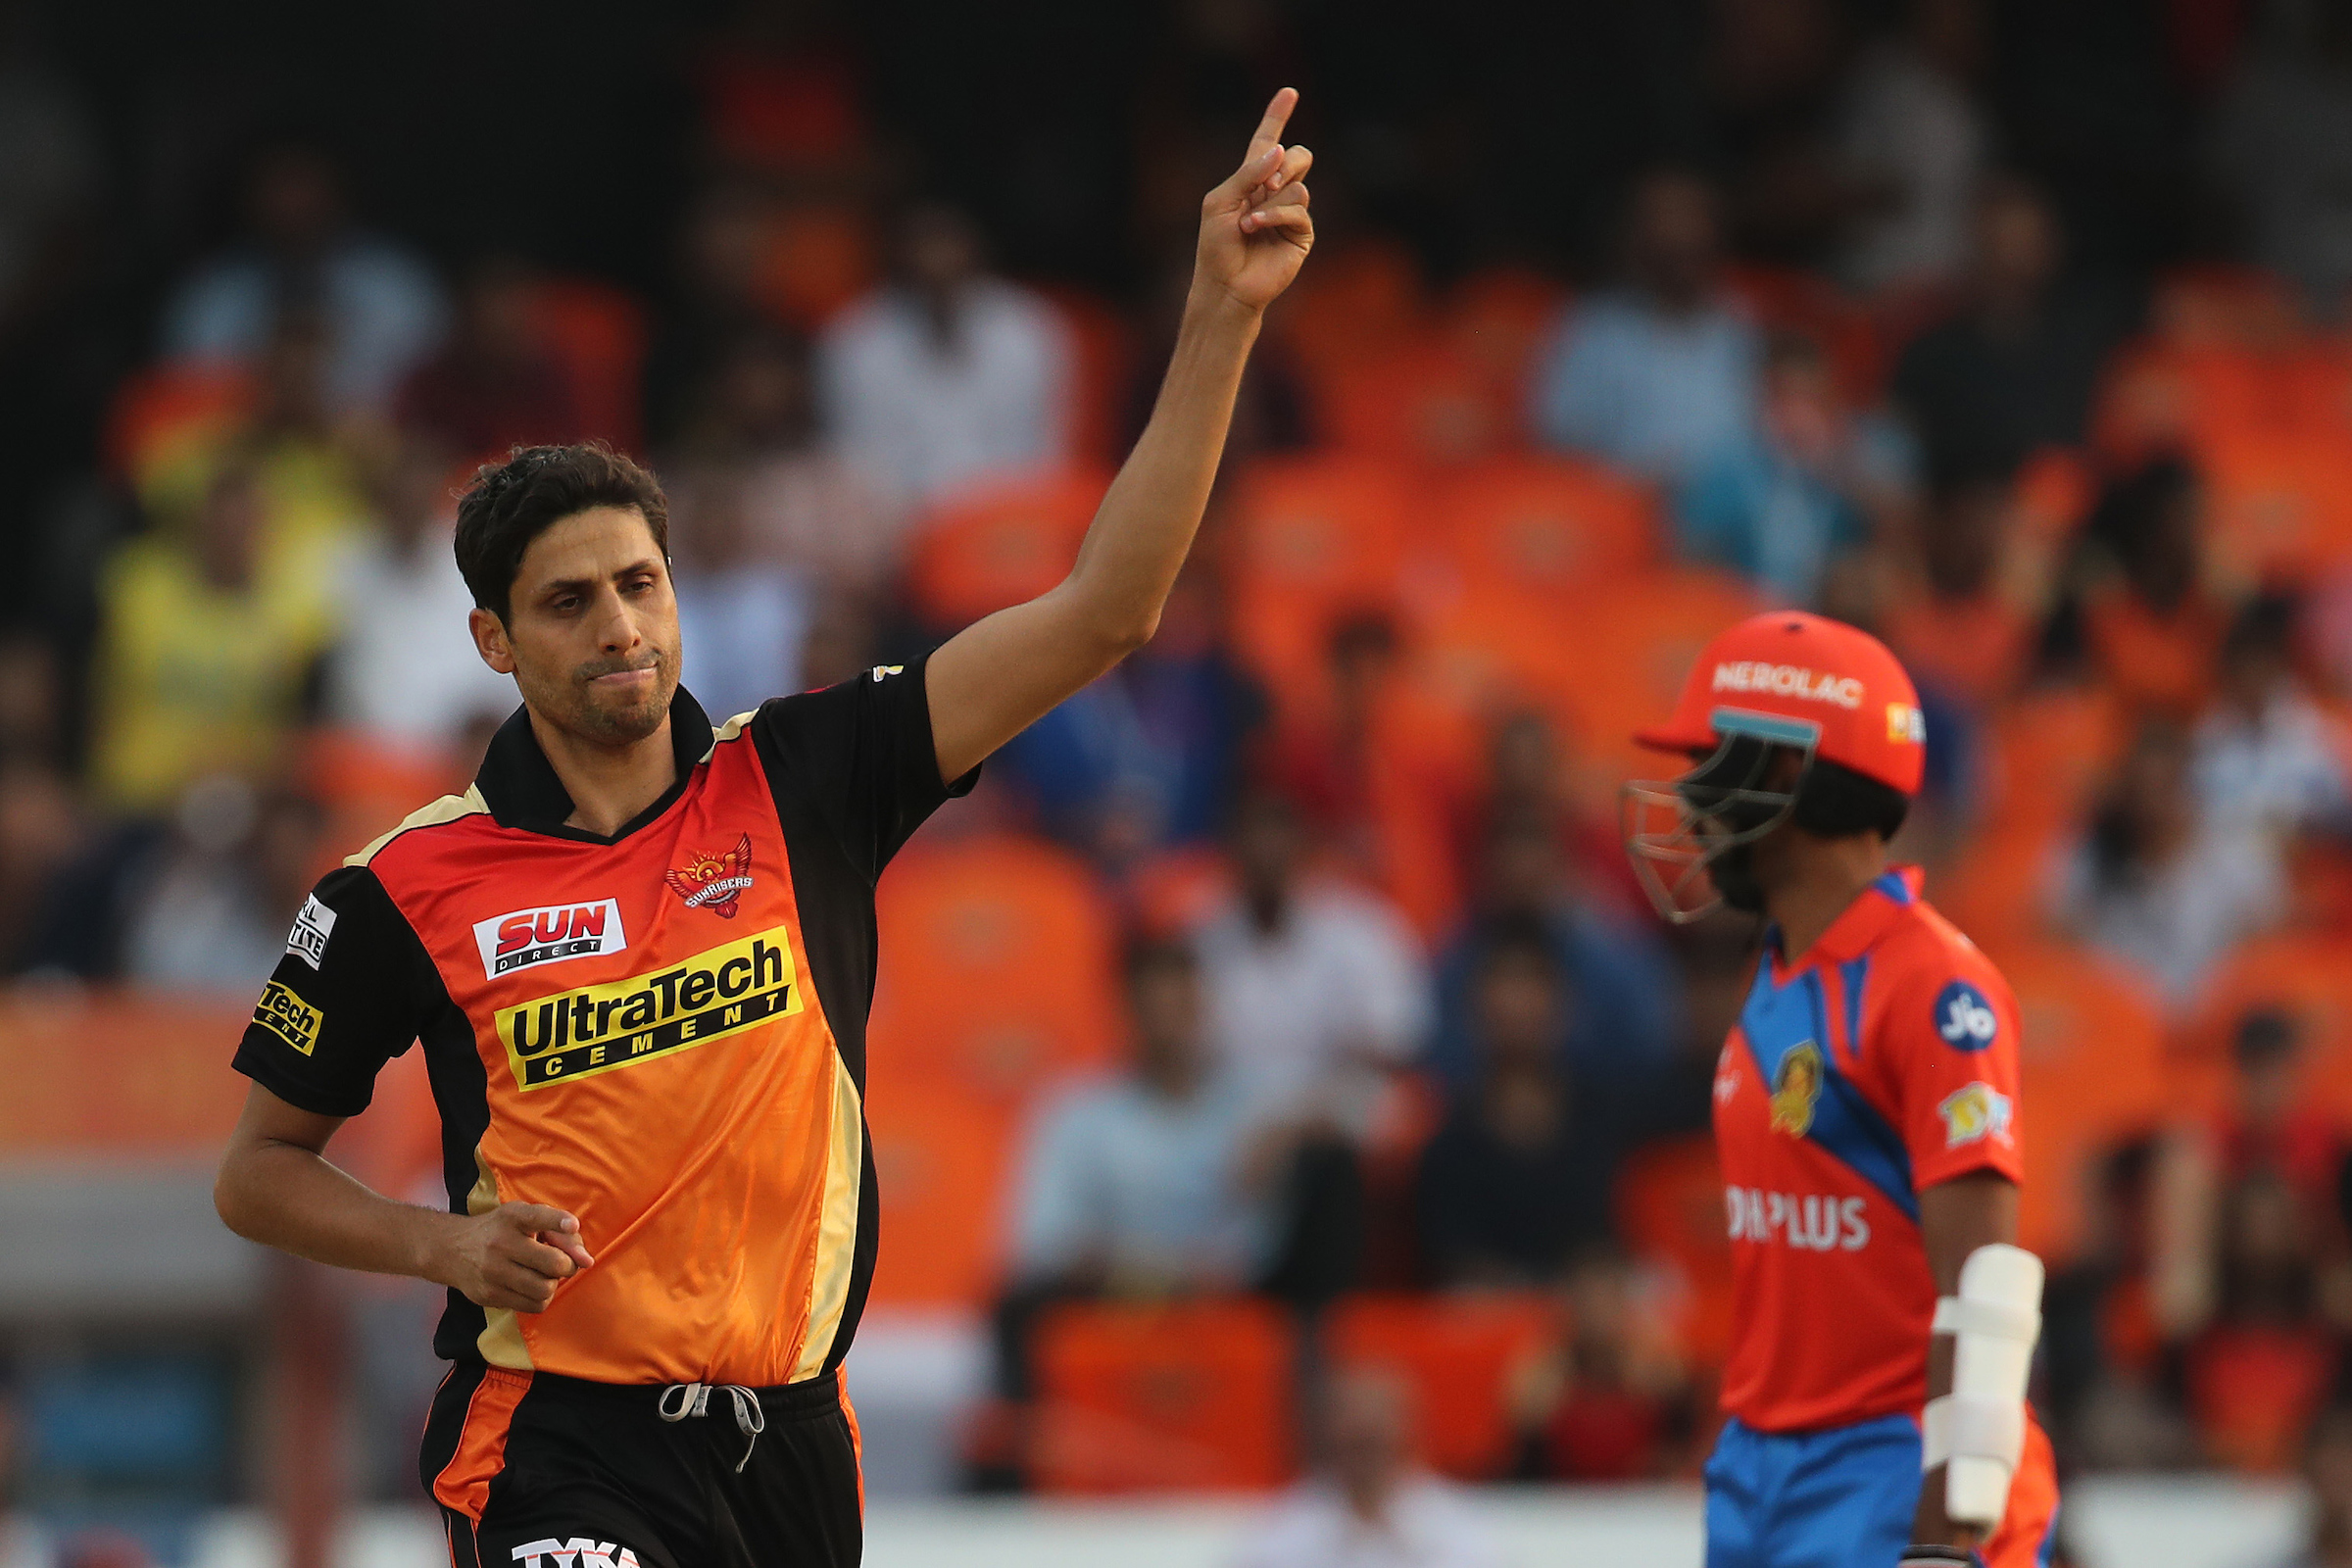 T20 cricket came as a boon for Nehra's struggling body and abundance of skills (Image: BCCI/IPL)